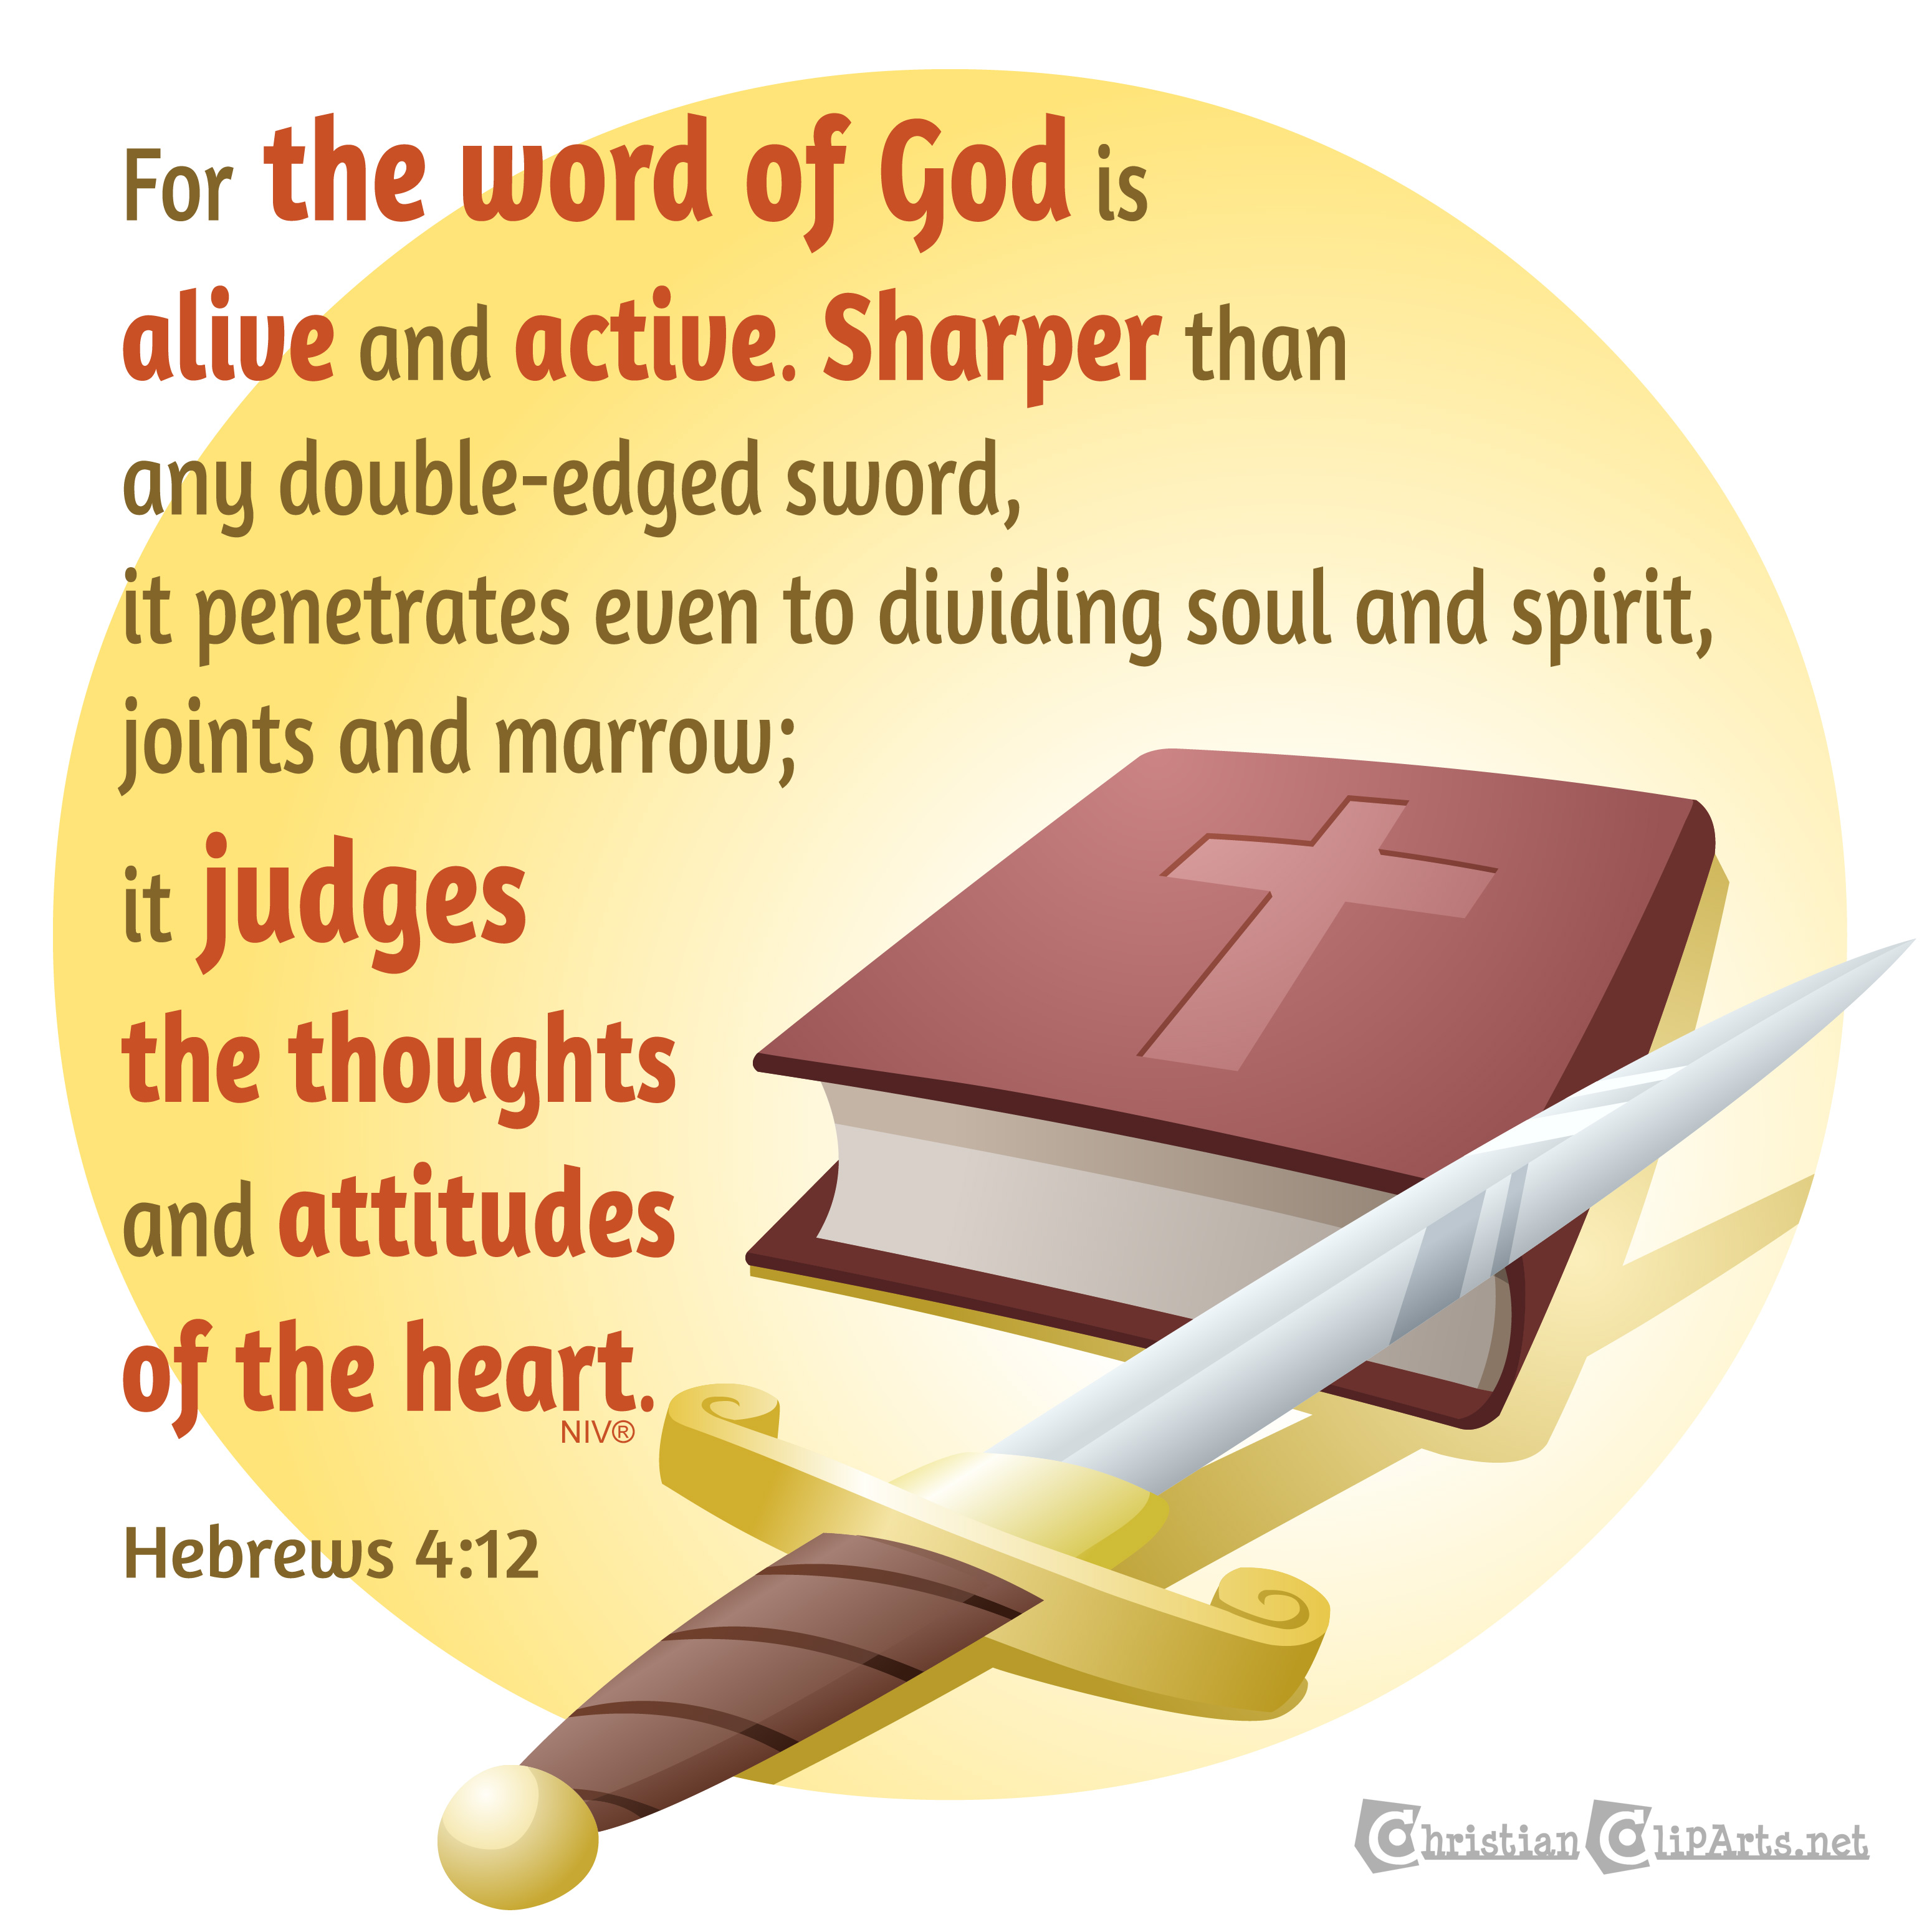 The word of God is living